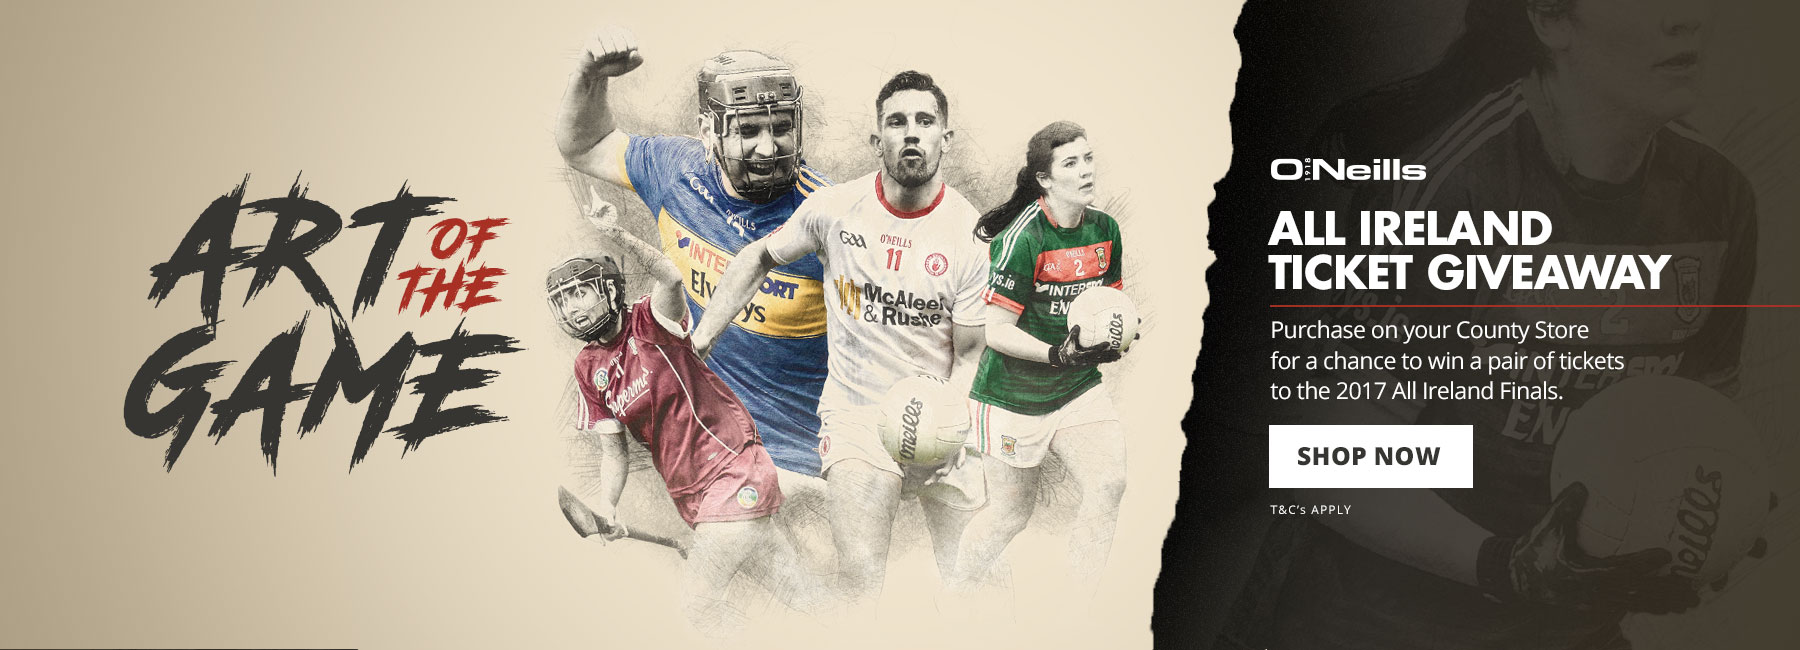 All Ireland Ticket Giveaway